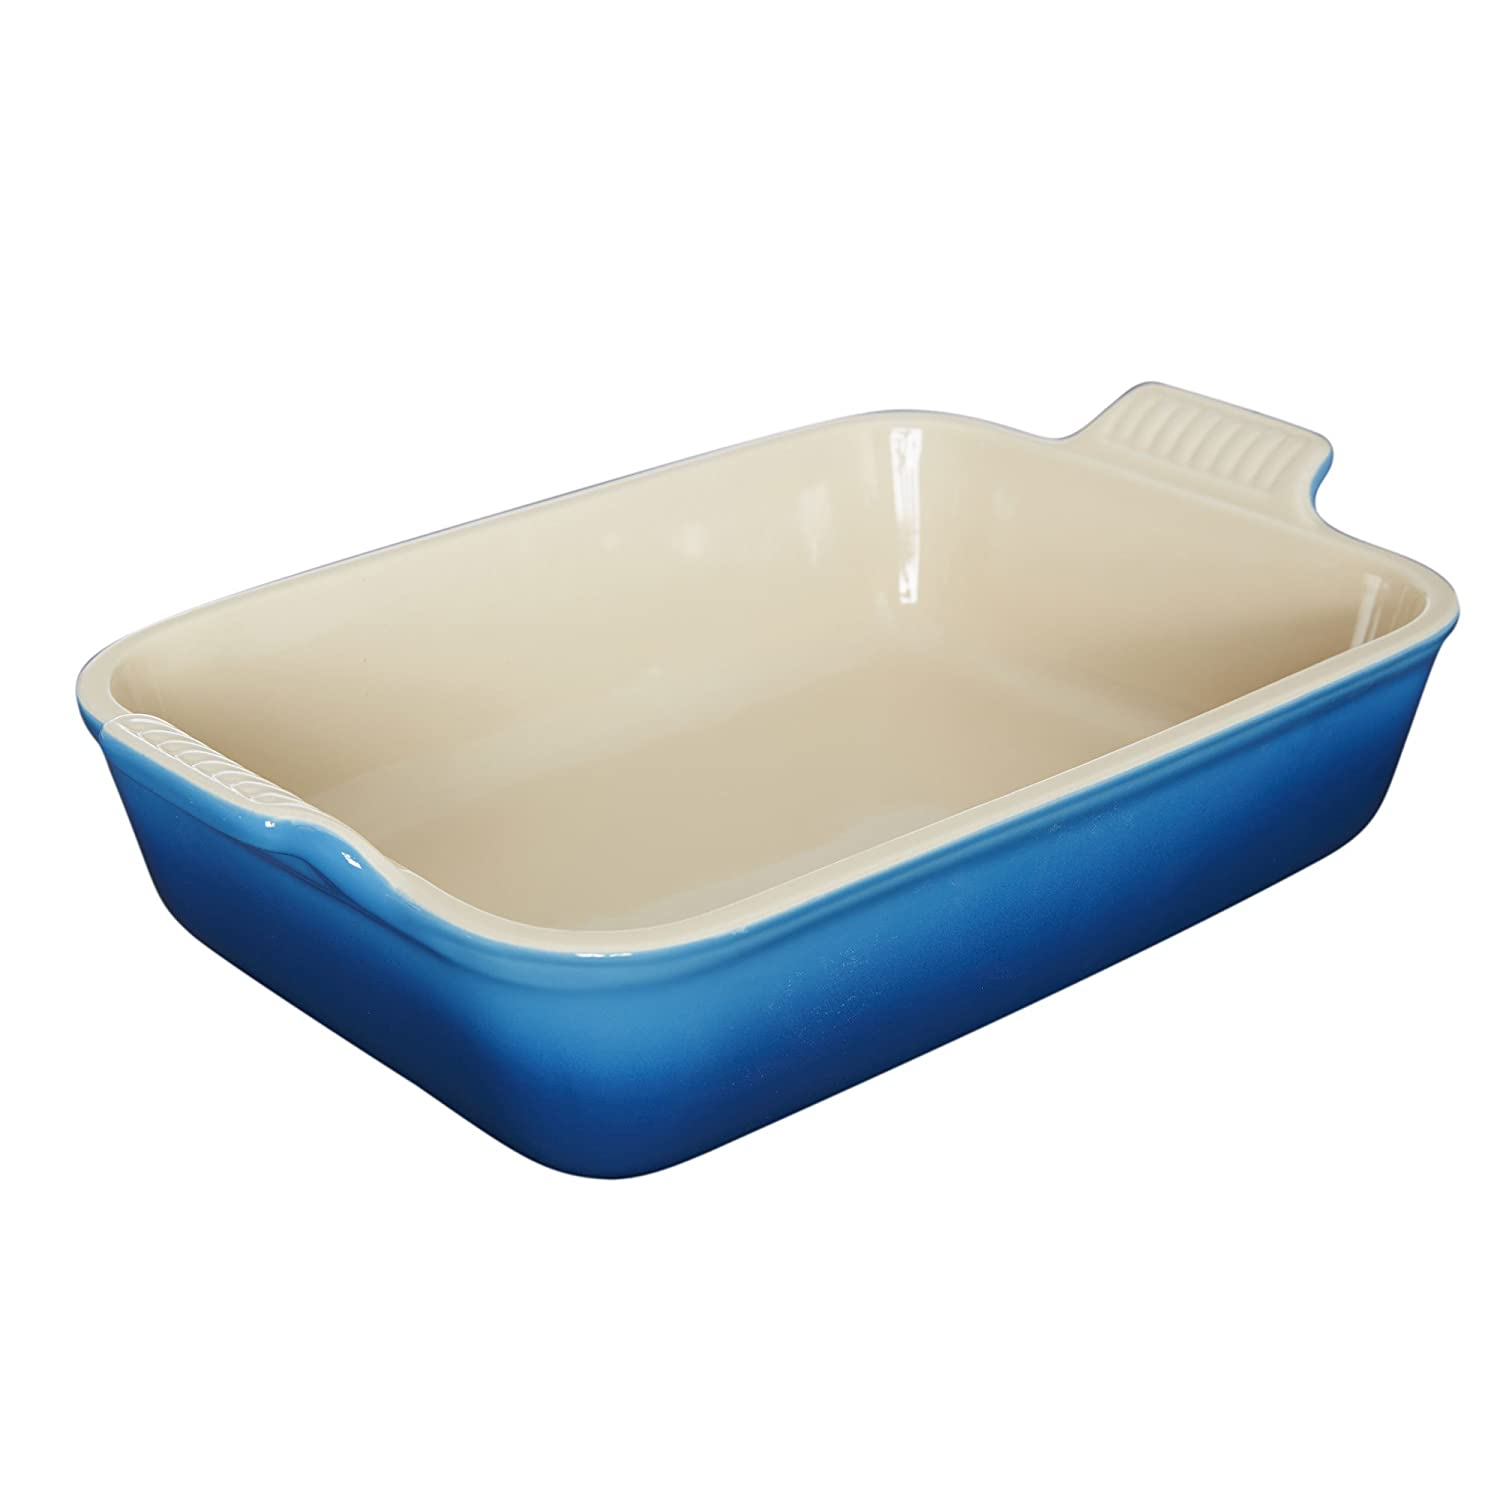 Le Creuset PG0700-2659 Heritage Stoneware Rectangular Dish, 10-1/2-by-7-Inch, Marseille